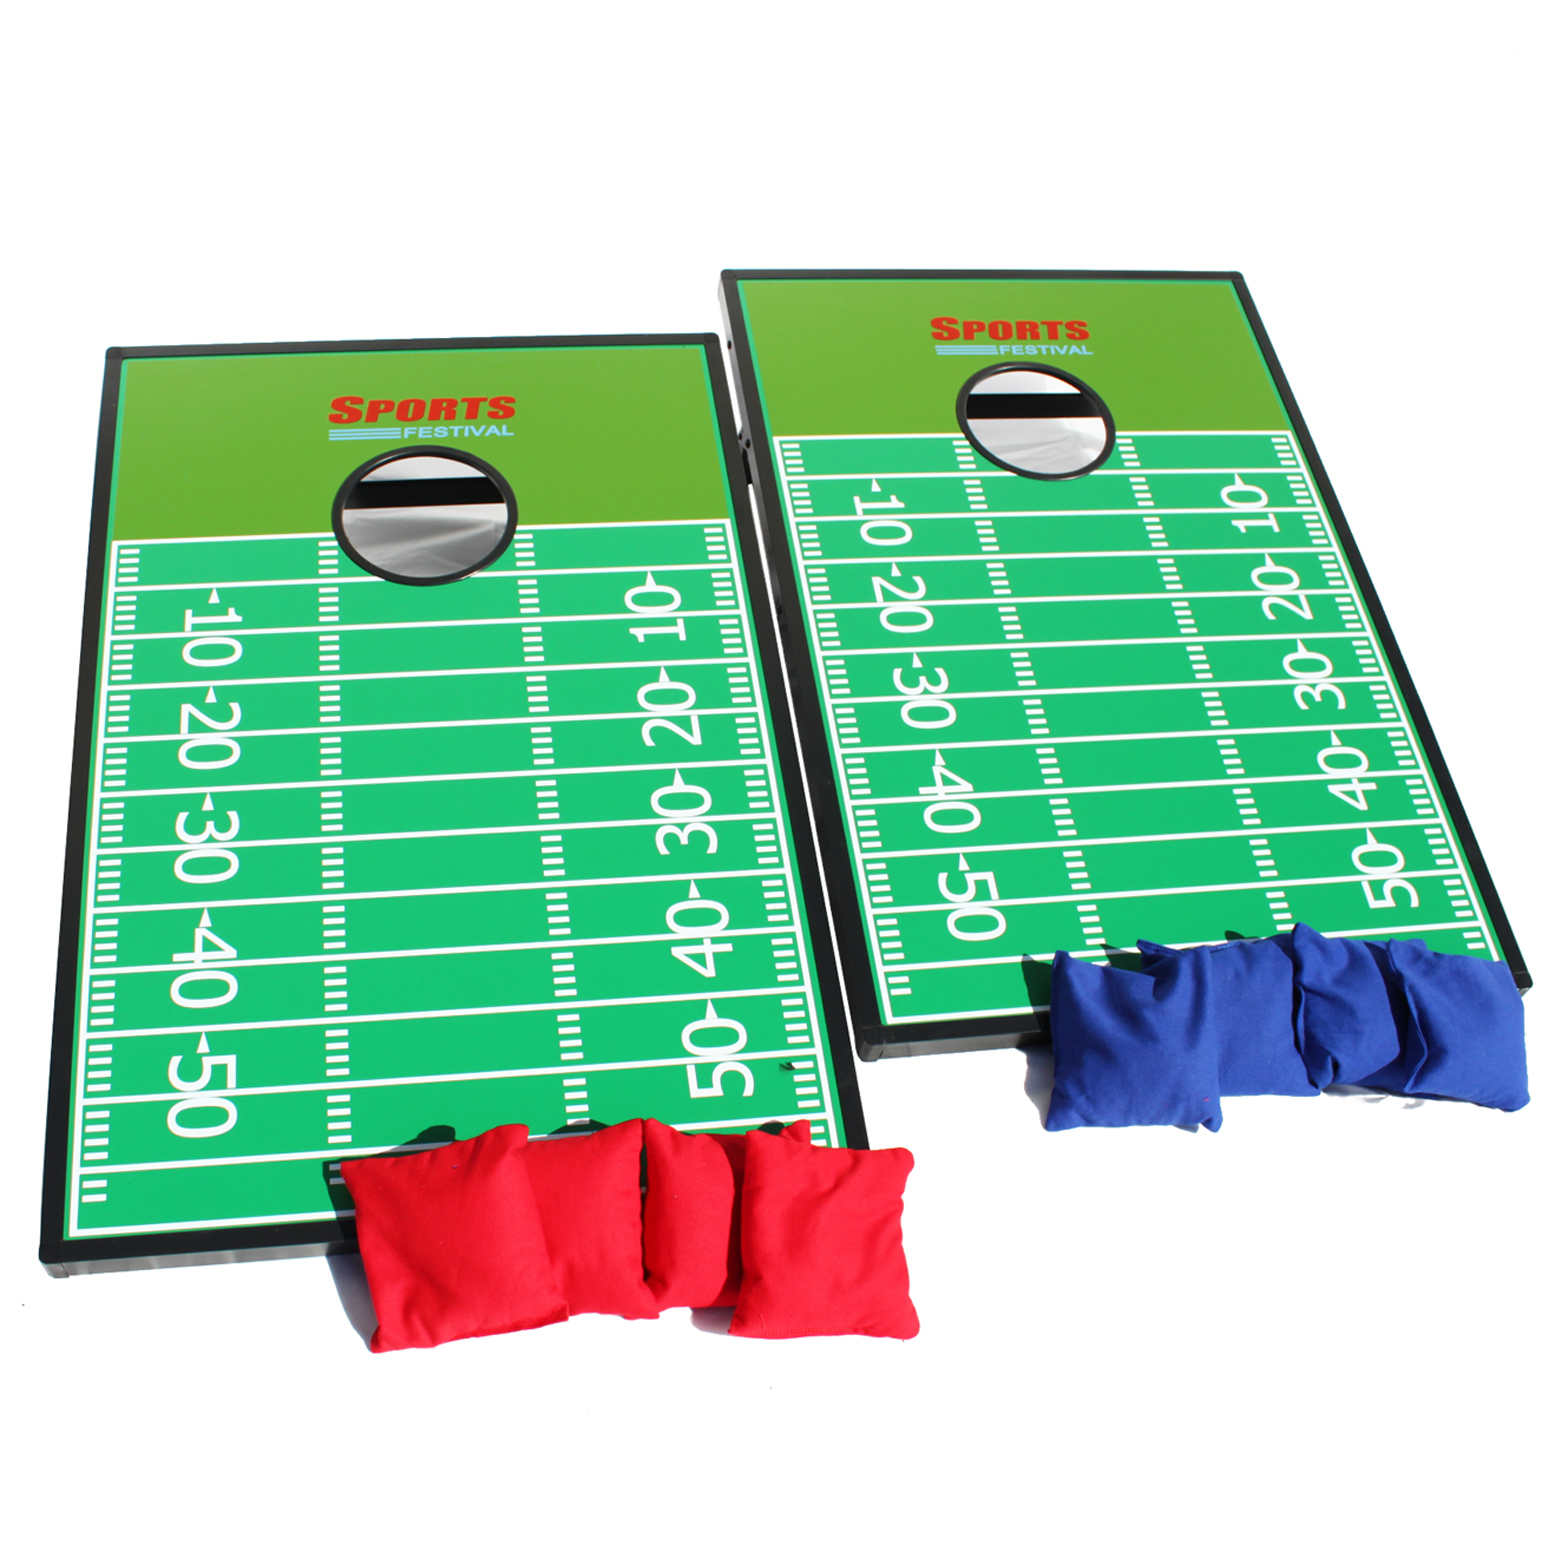 Cornhole Beanbag Toss Game Great for Outside Yard Kids Games Tic Tac Toe and Cornhole Party Games Football Field by Zhejiang Phelps Lighting Technololgy Co., Ltd.